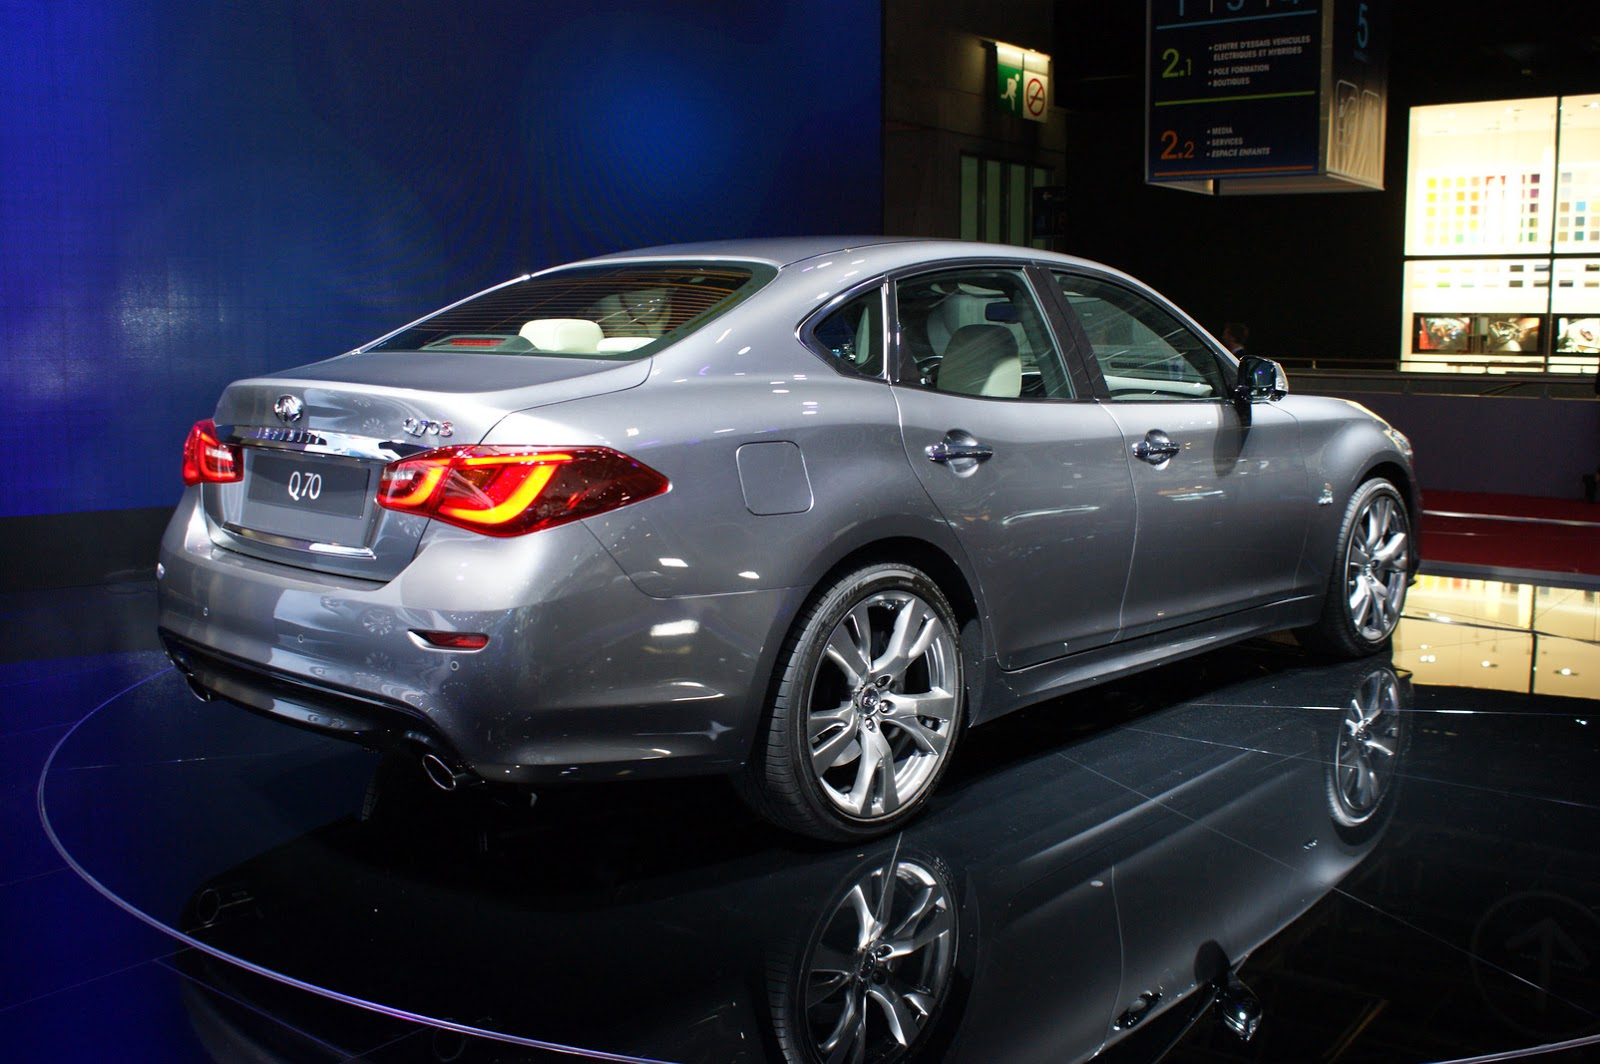 facelifted infiniti q70 arrives in paris with new diesel lump carscoops. Black Bedroom Furniture Sets. Home Design Ideas